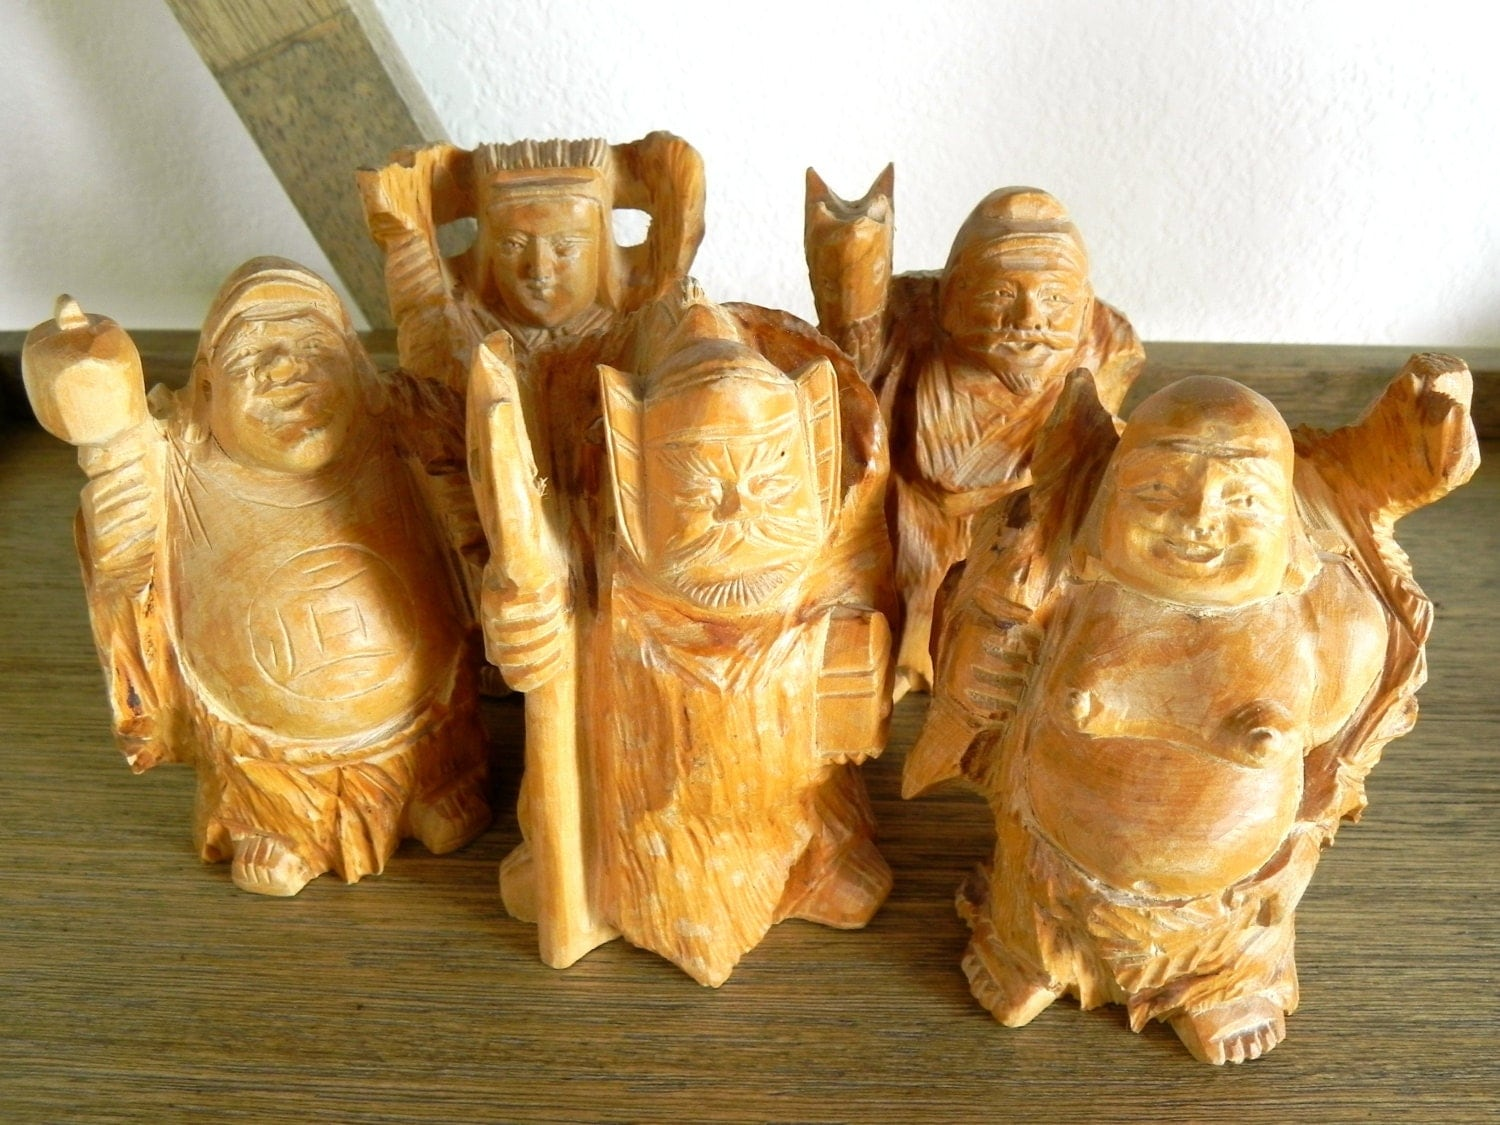 Popular items for buddhist home decor on Etsy